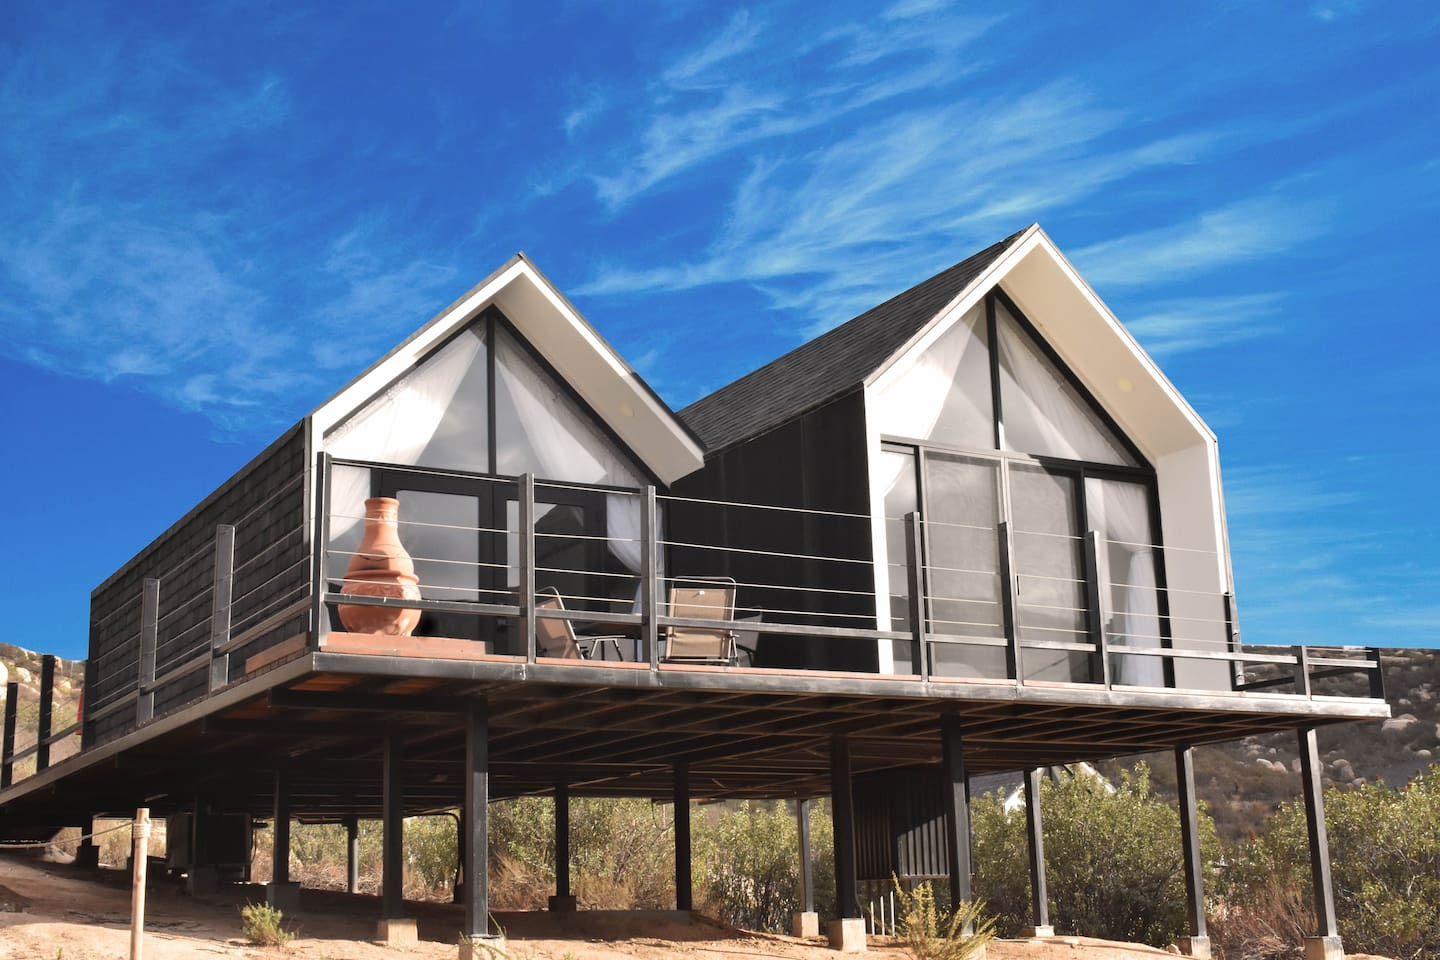 2 Bedrooms and 1 bathroom in this beautiful spacious cabin with a terrace and outside fireplace.